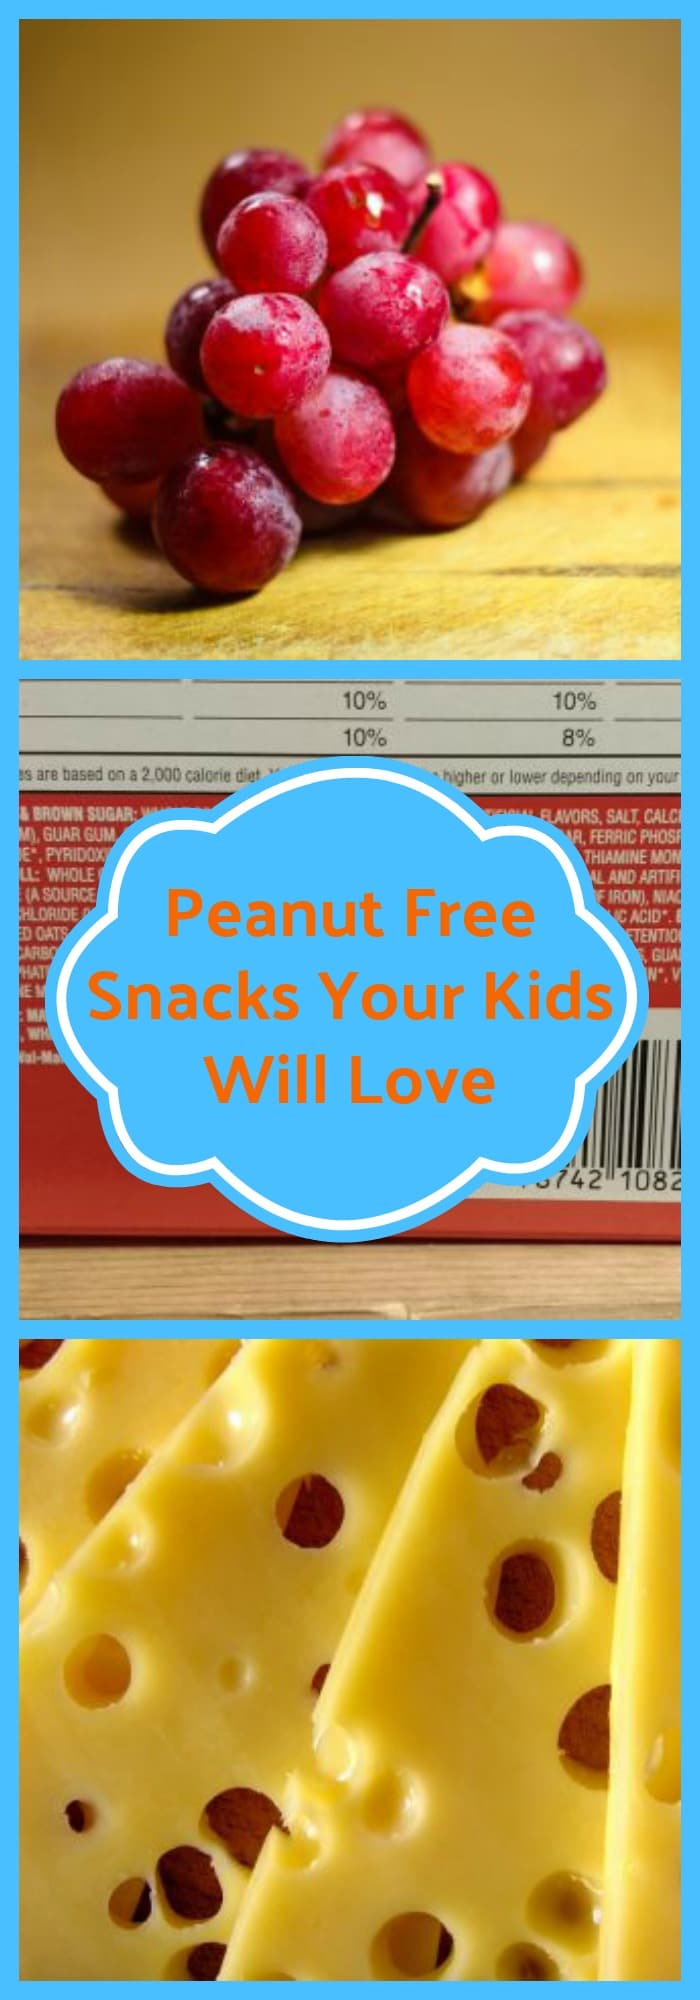 Peanut Free Snacks Your Kids Will Love